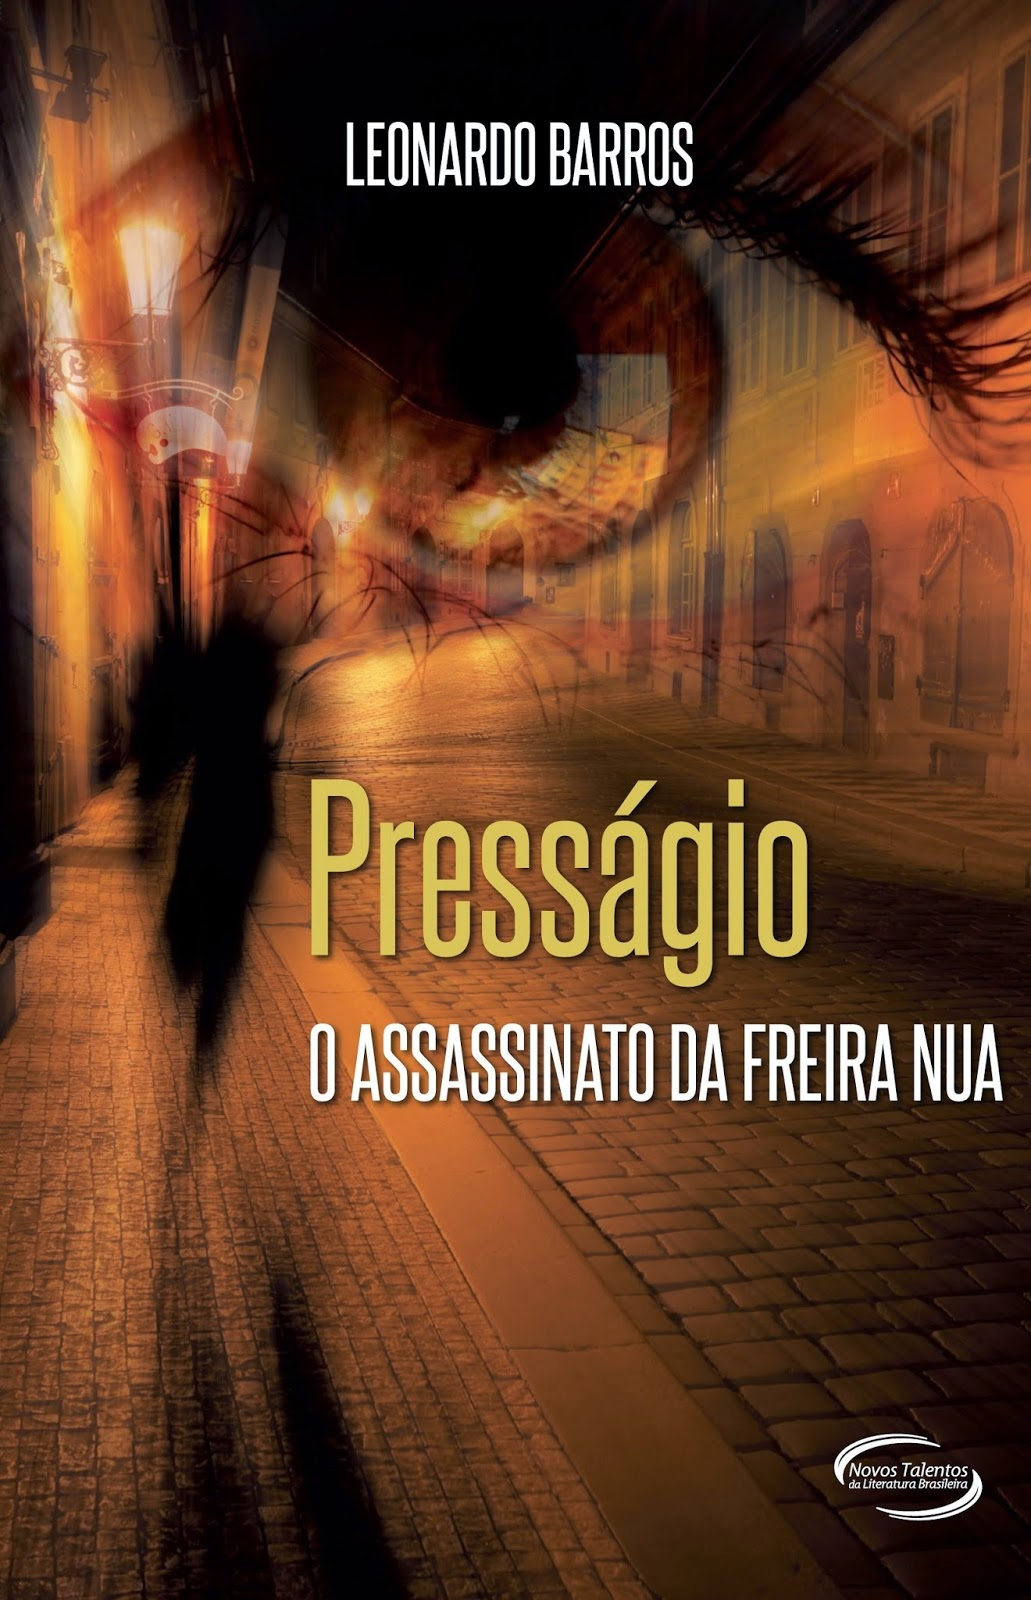 Presságio: o assassinato da freira nua